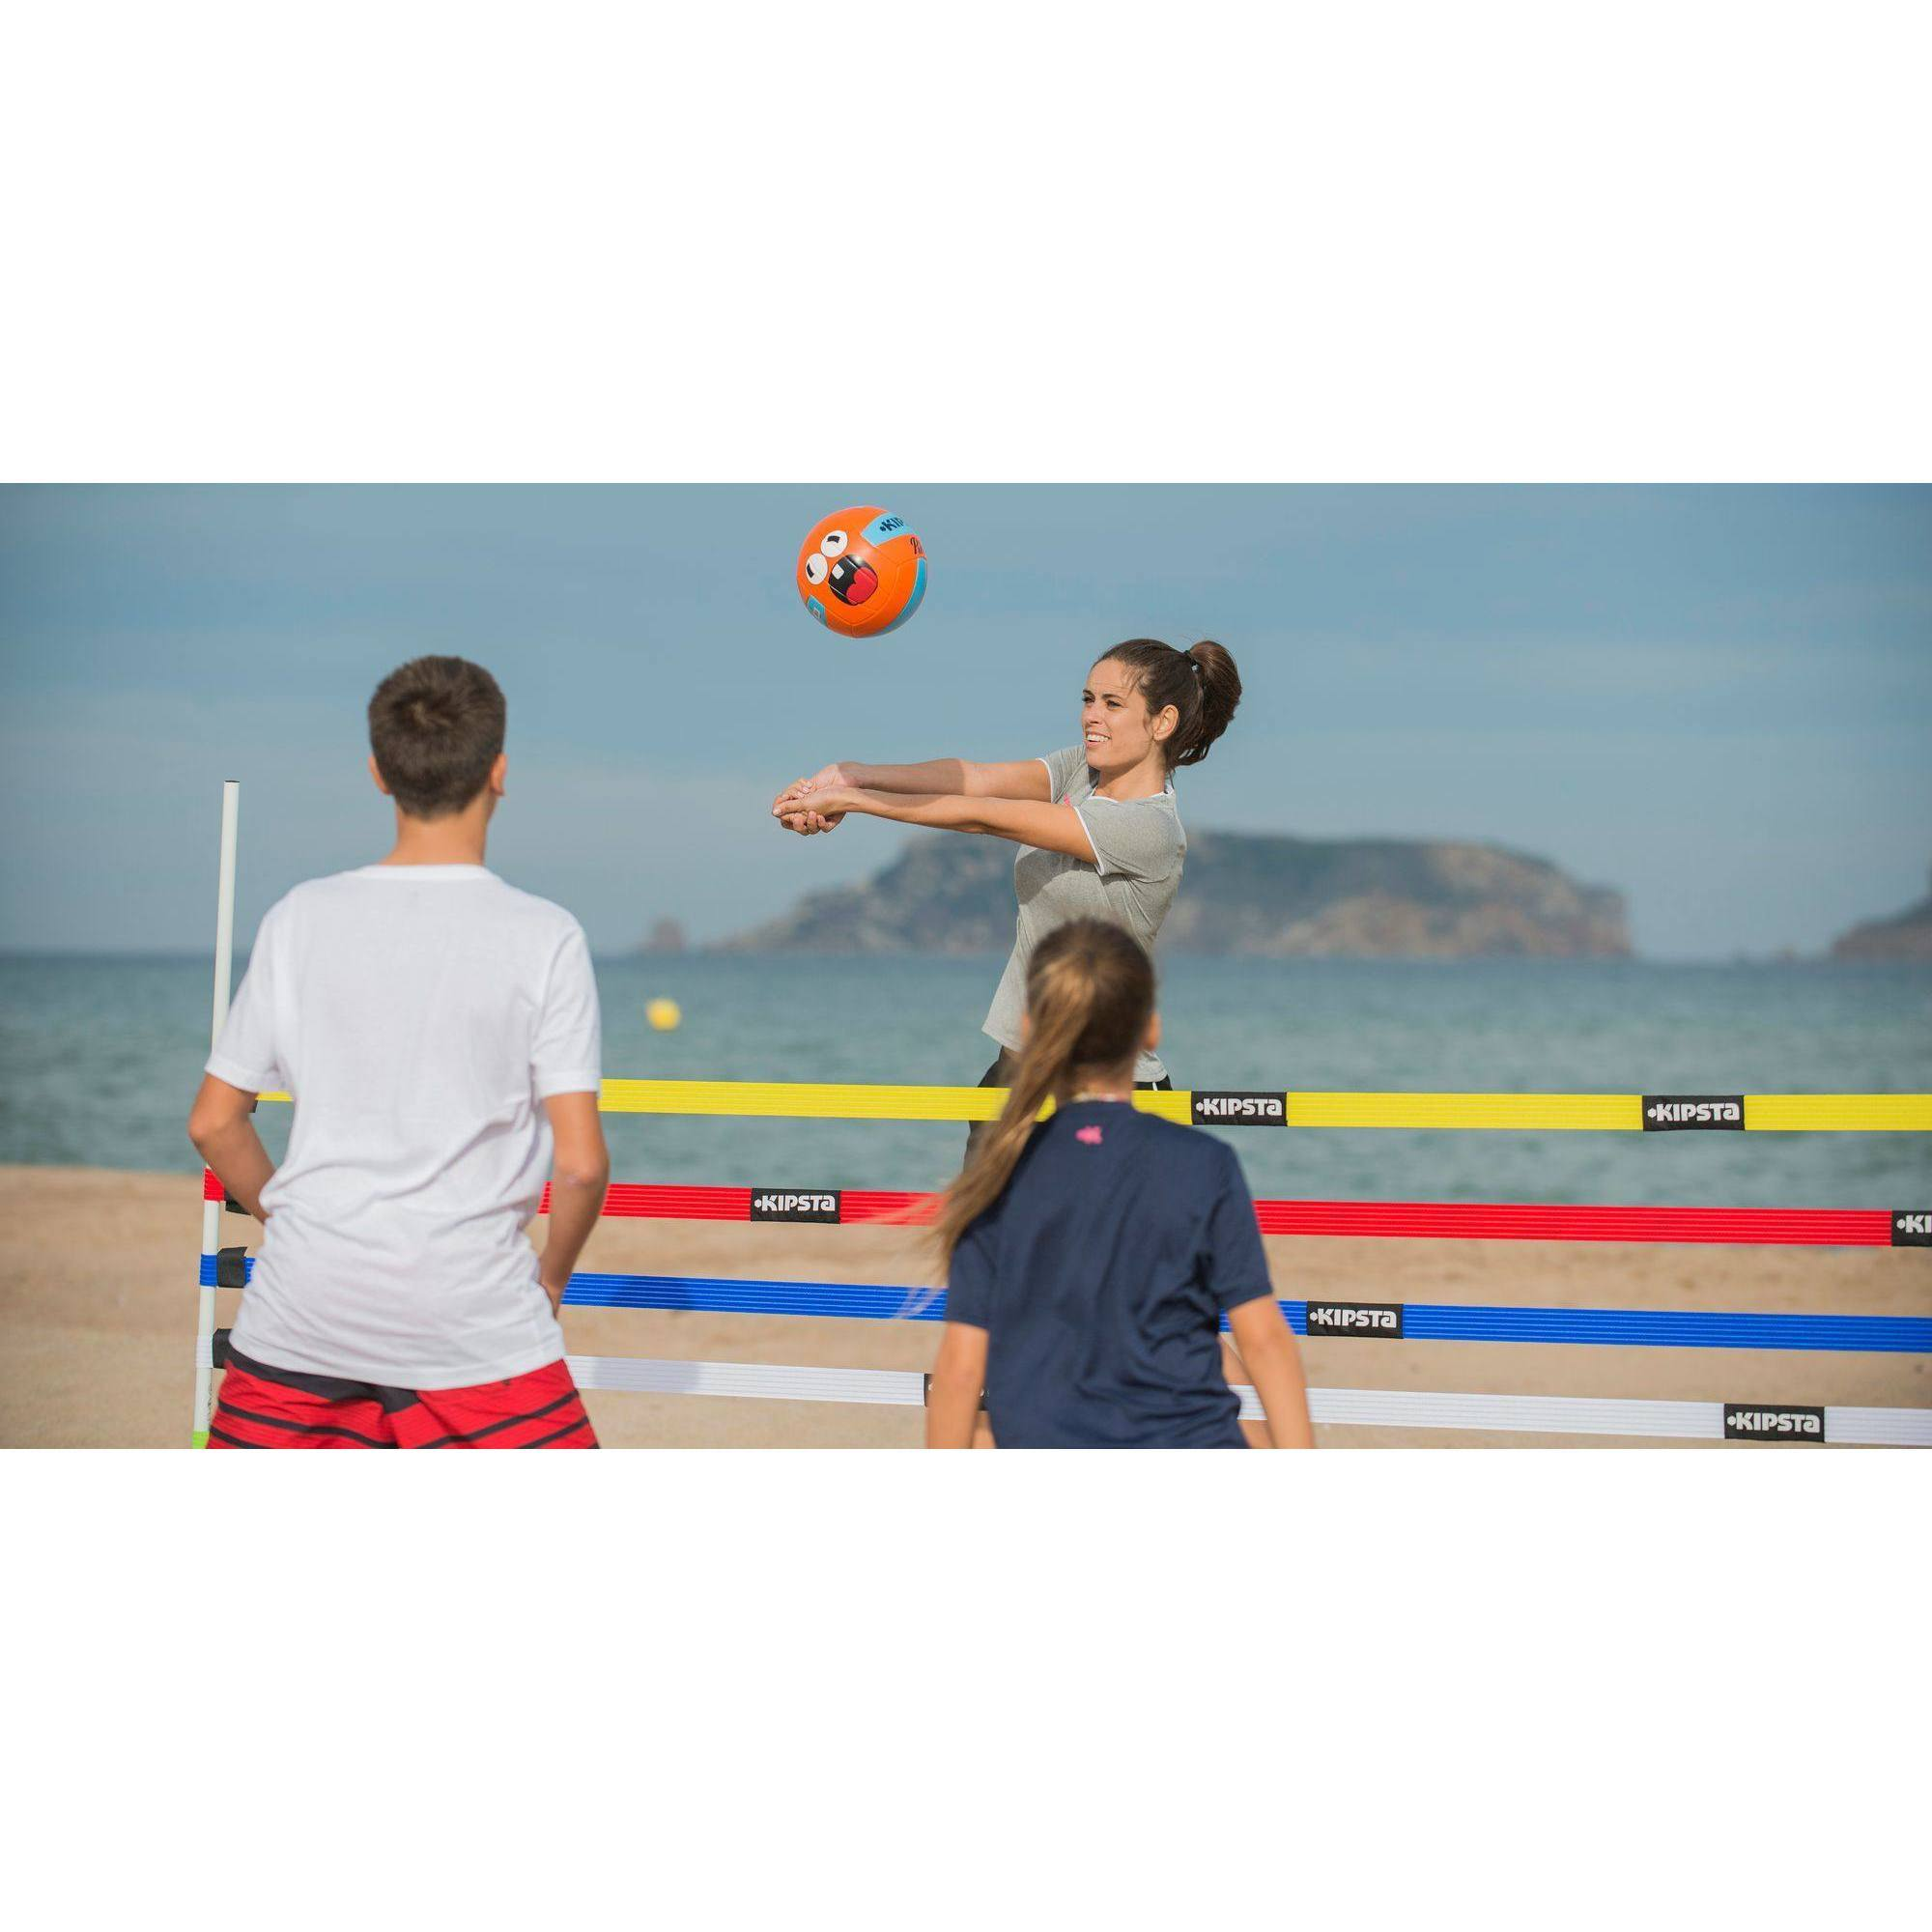 ballon volleyball ext rieur rio face bleu orange clubs collectivit s decathlon pro. Black Bedroom Furniture Sets. Home Design Ideas